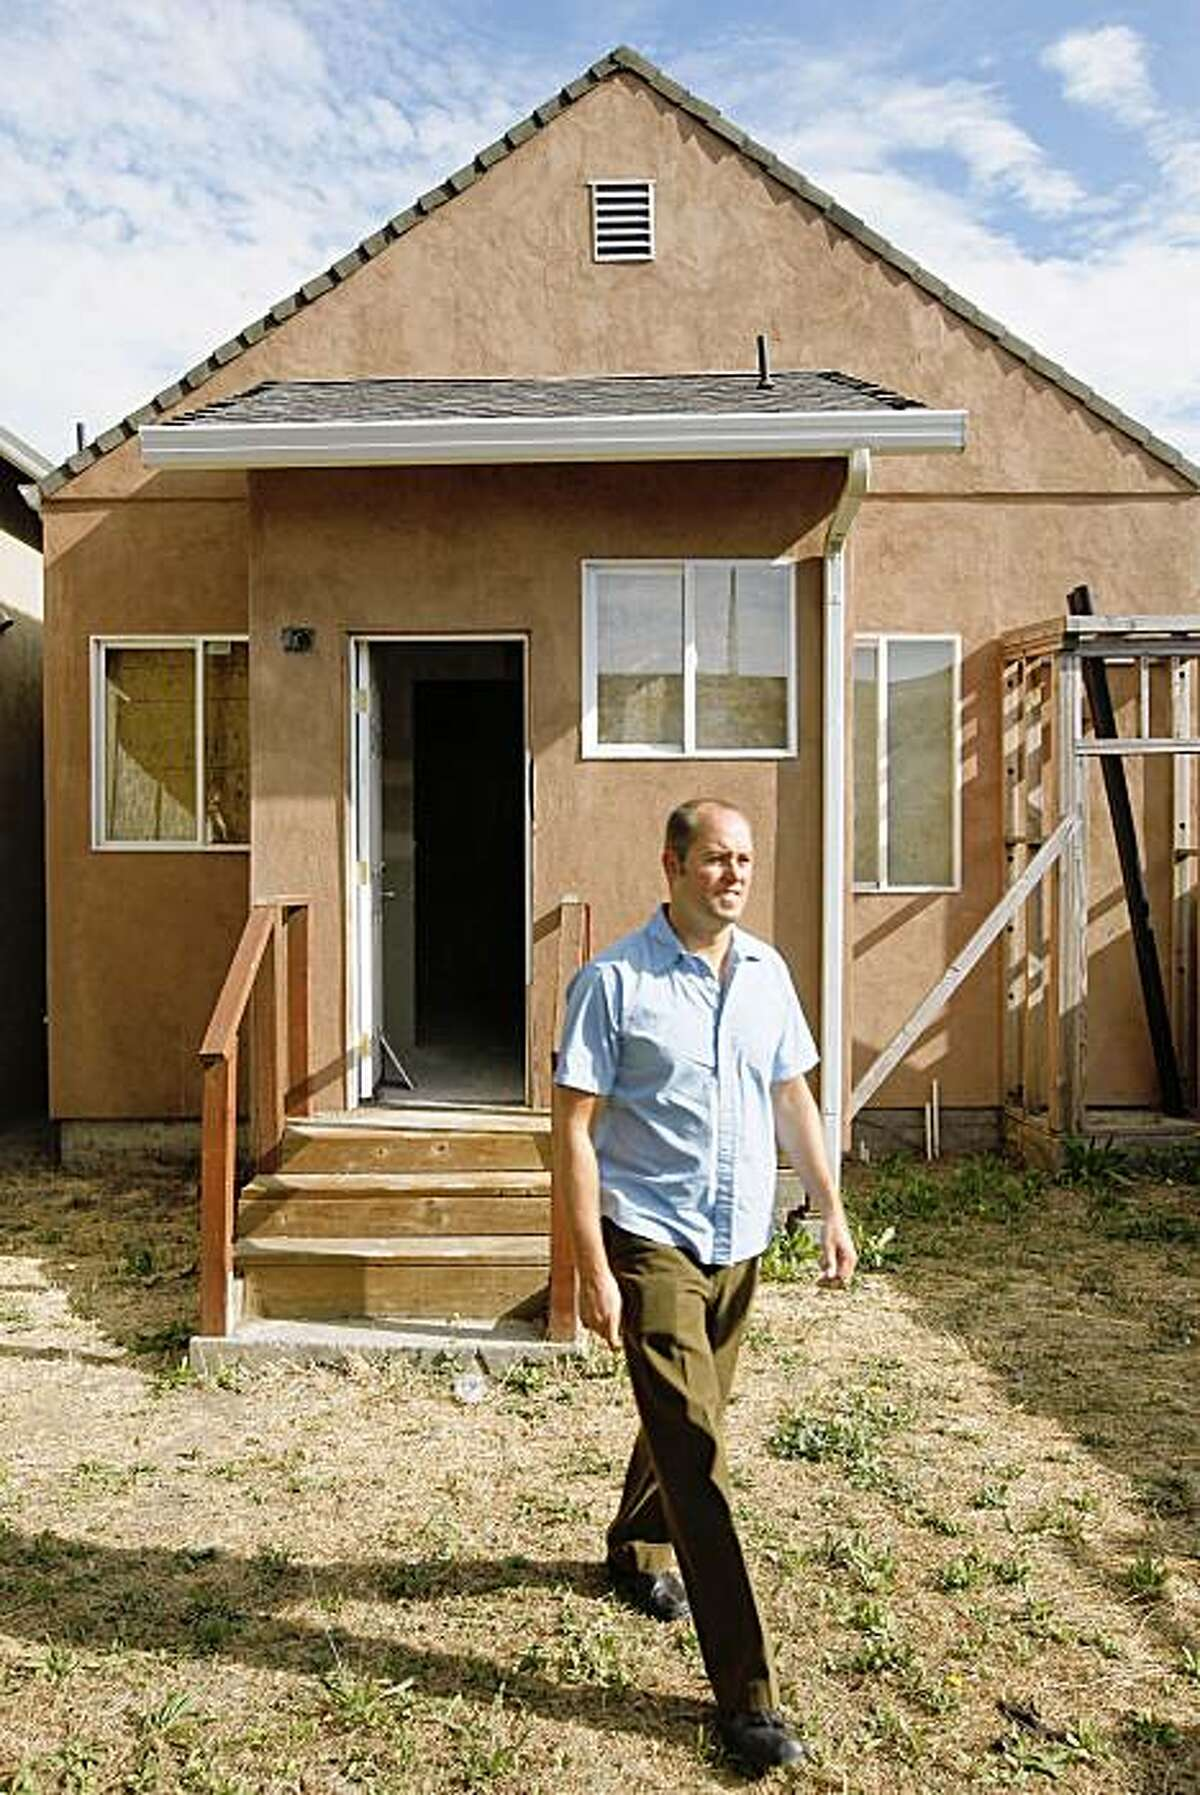 Nathan Foran, used his self-directed IRA to buy this foreclosure property in Richmond, Ca. for a price of $25,000. Foran in the small backyard of the partially renovated property on Friday August 28, 2009.